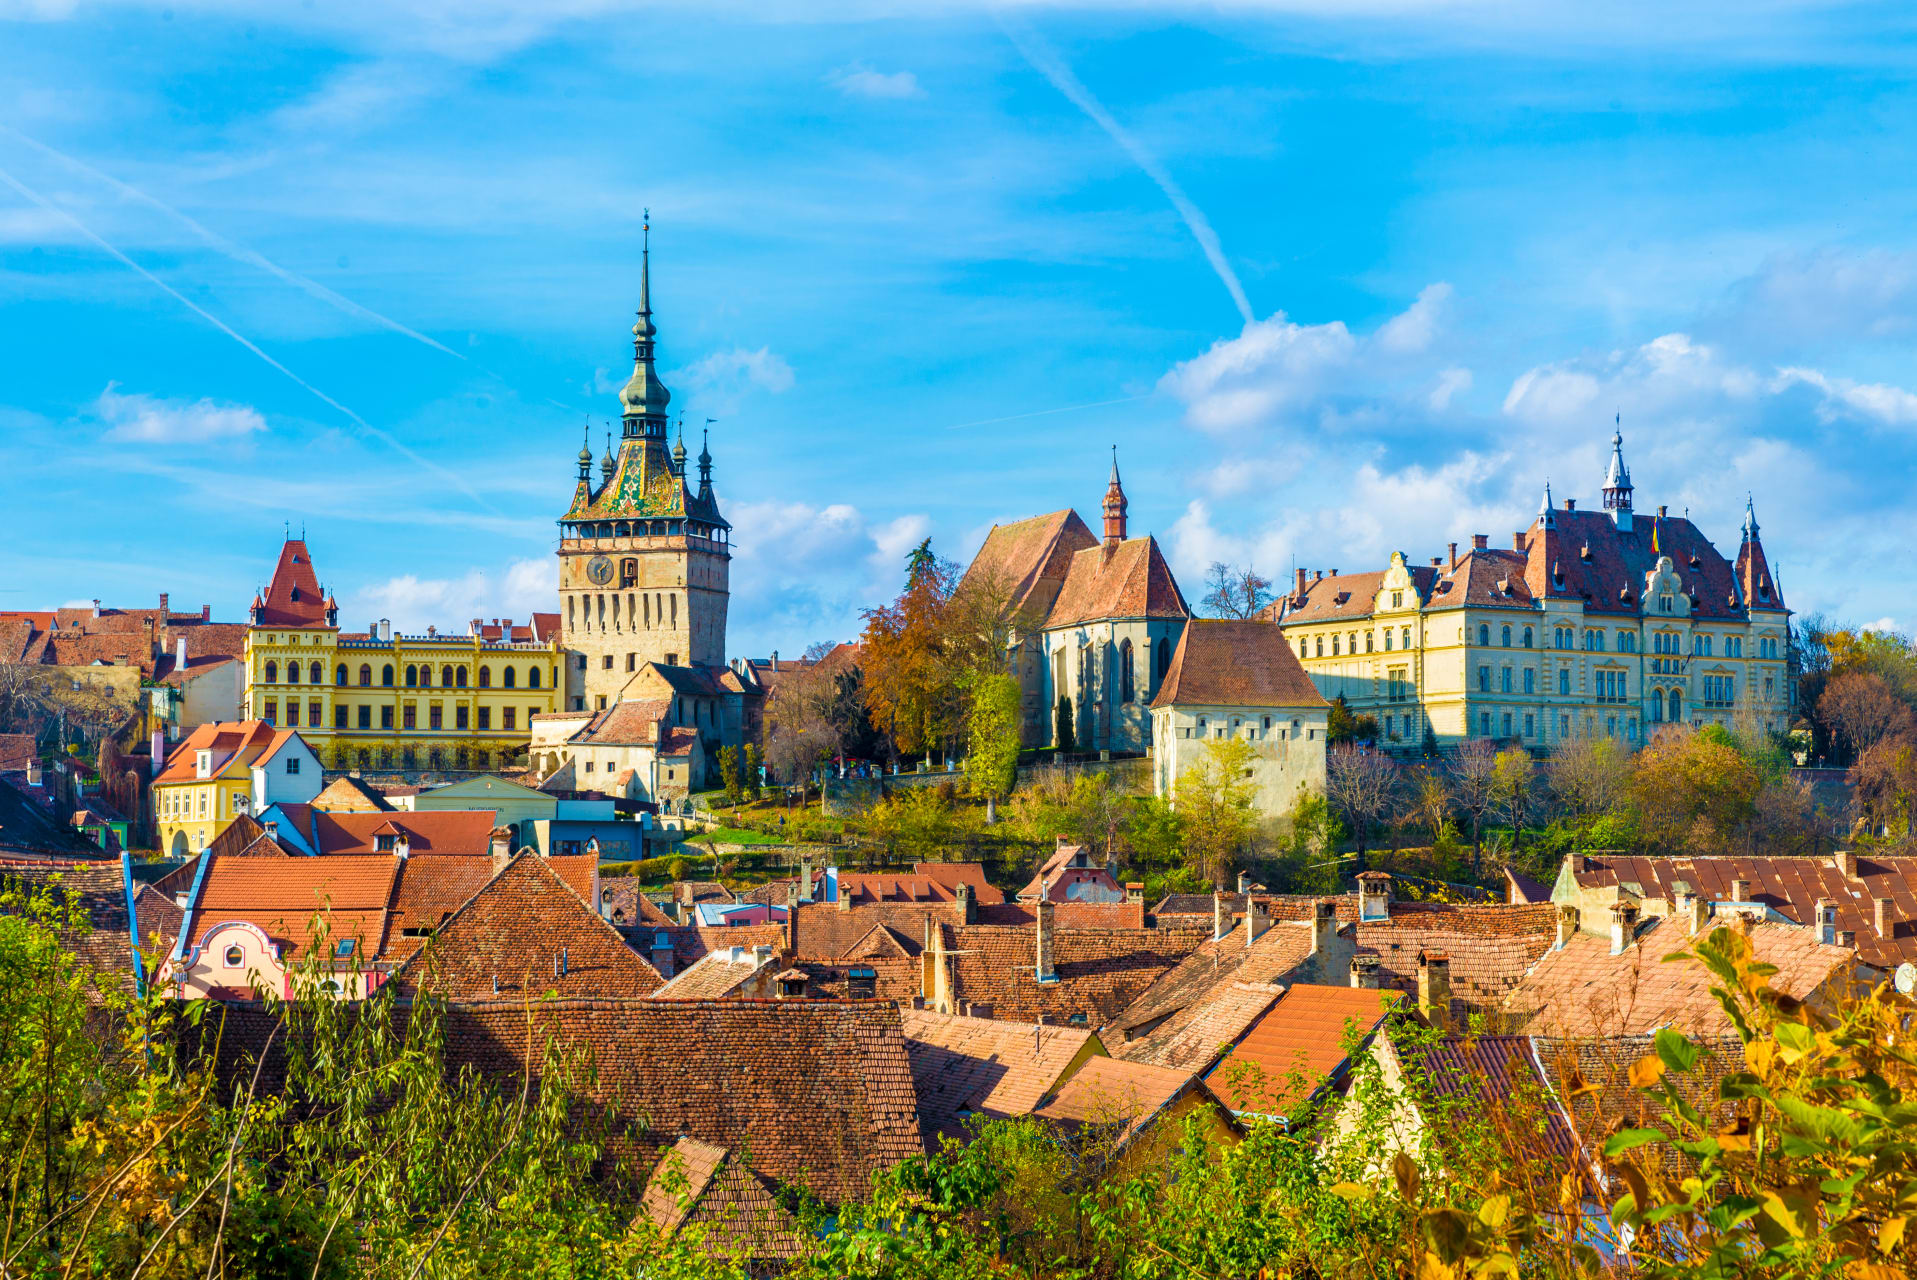 Transylvania - The UNESCO medieval citadel of Sighisoara: the birthplace of Vlad the Impaler (aka Dracula)